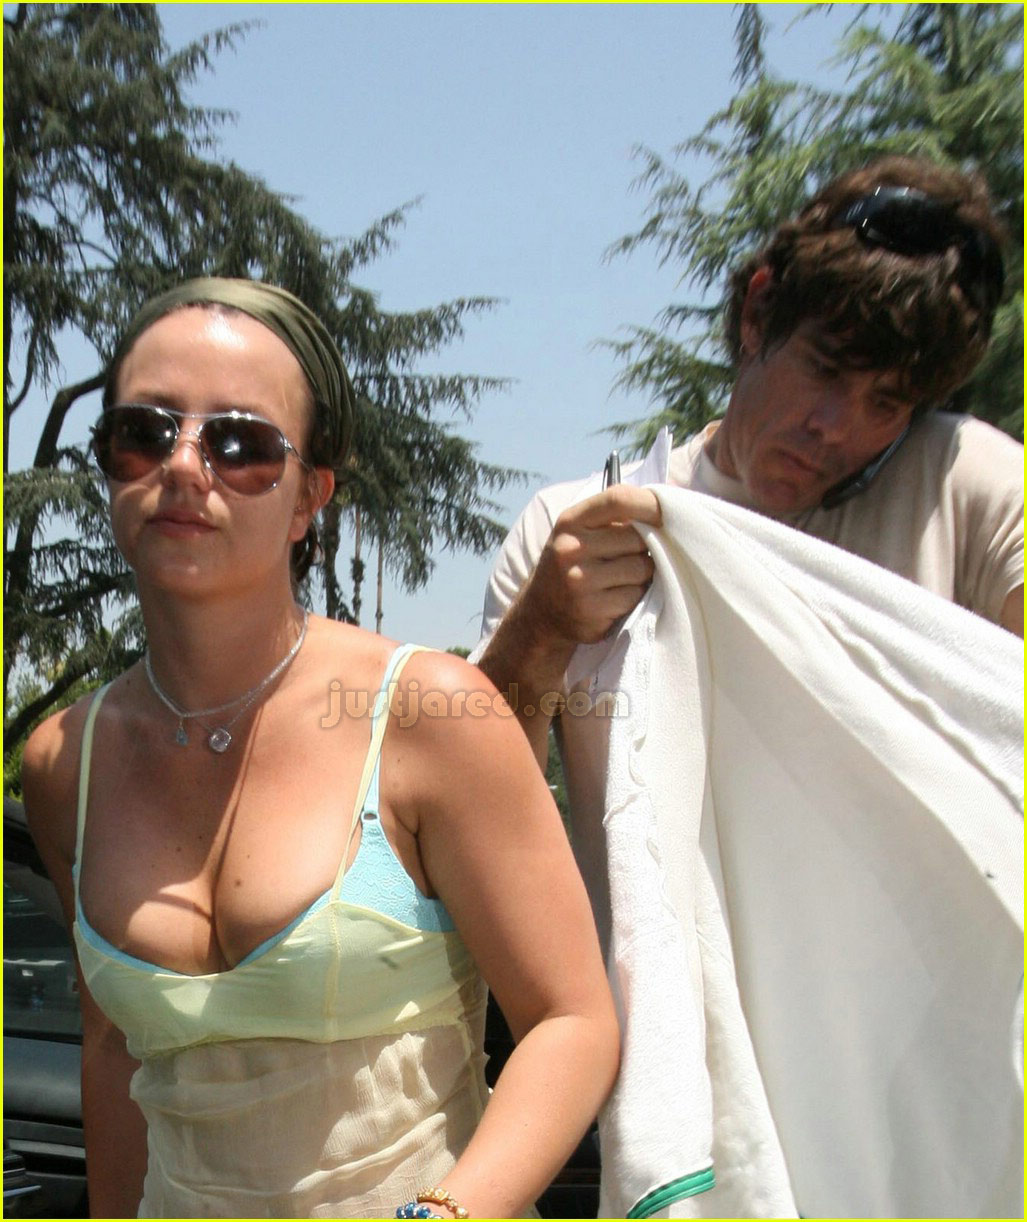 britney spears busting out of bra 04